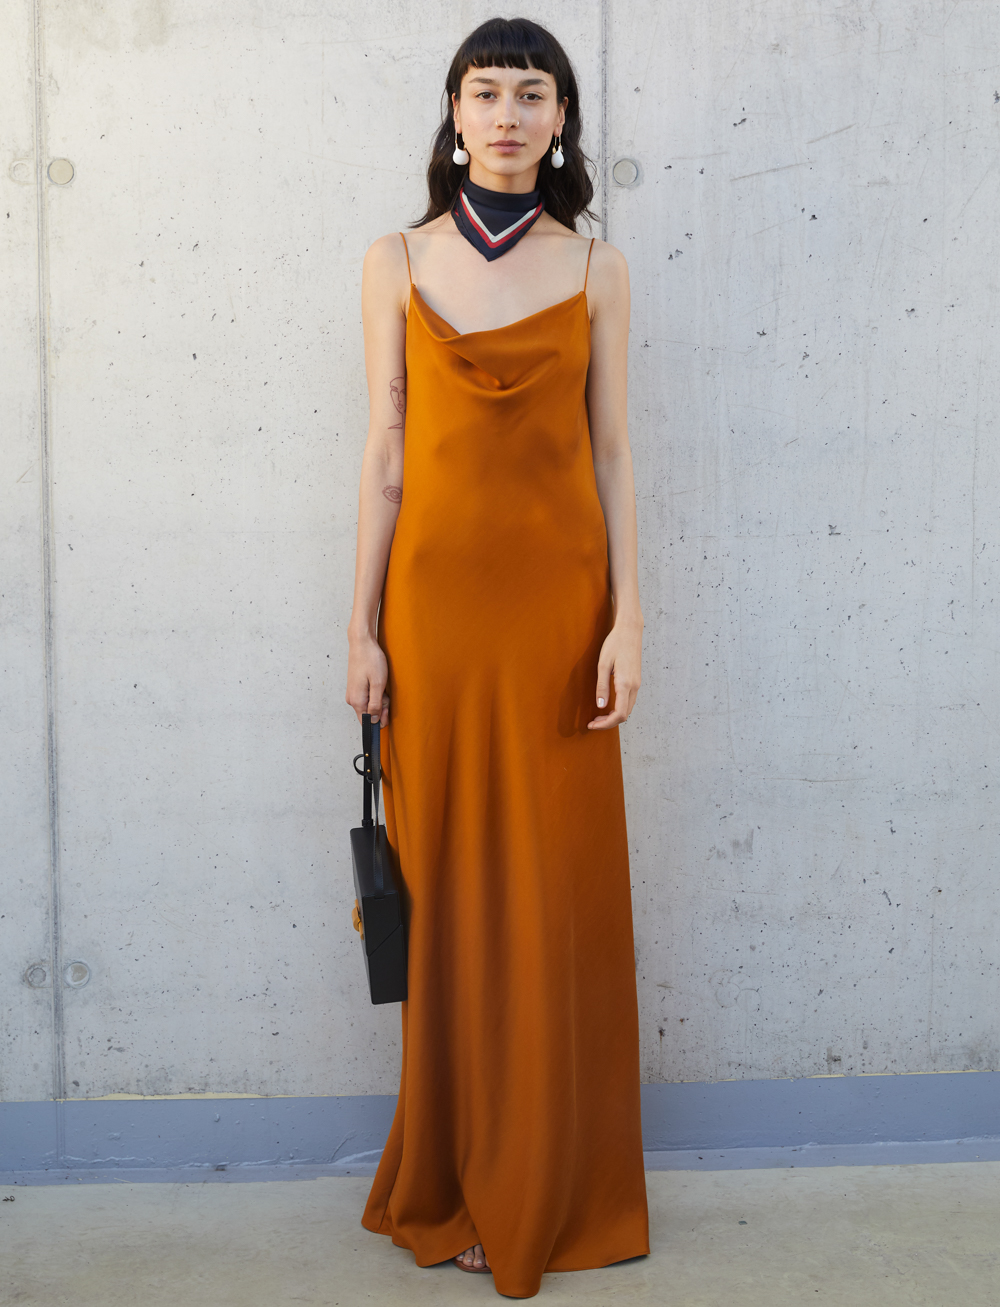 The Orange Work Maxi Dress by Manurí on curated-crowd.com